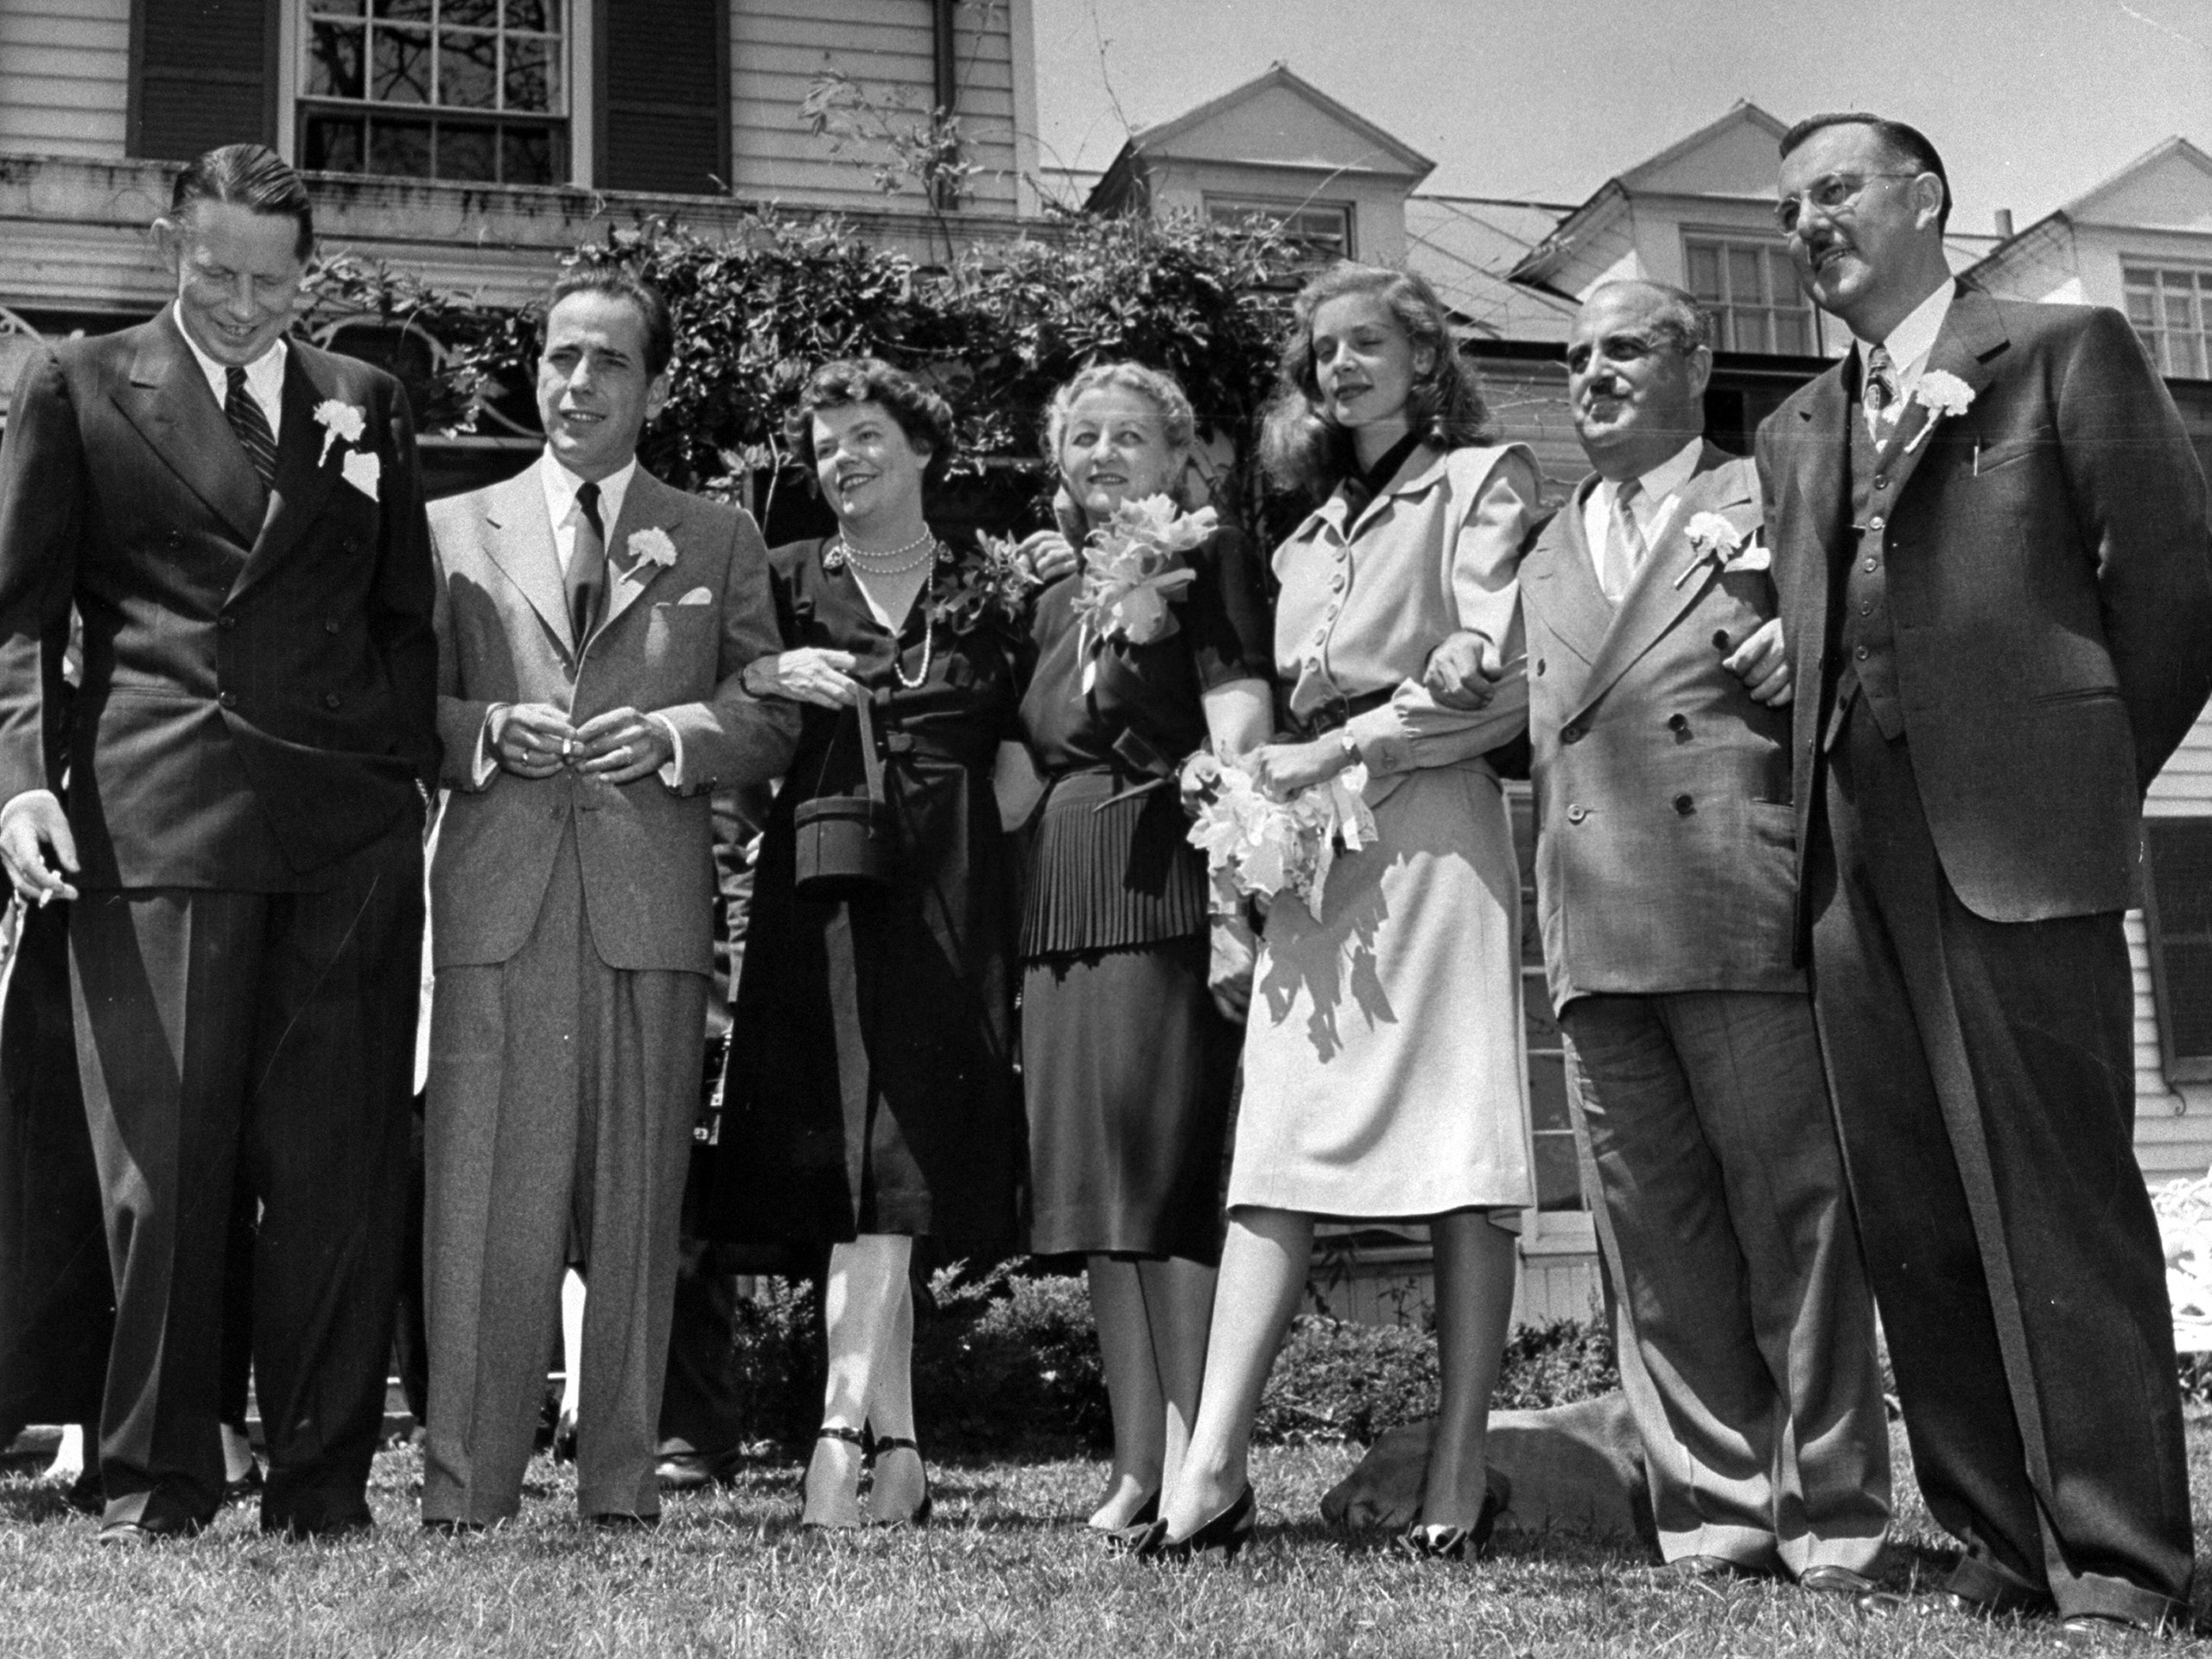 Novelist Louis Bromfield (L) with Humphrey Bogart, Lauren Bacall and their guests at their wedding.